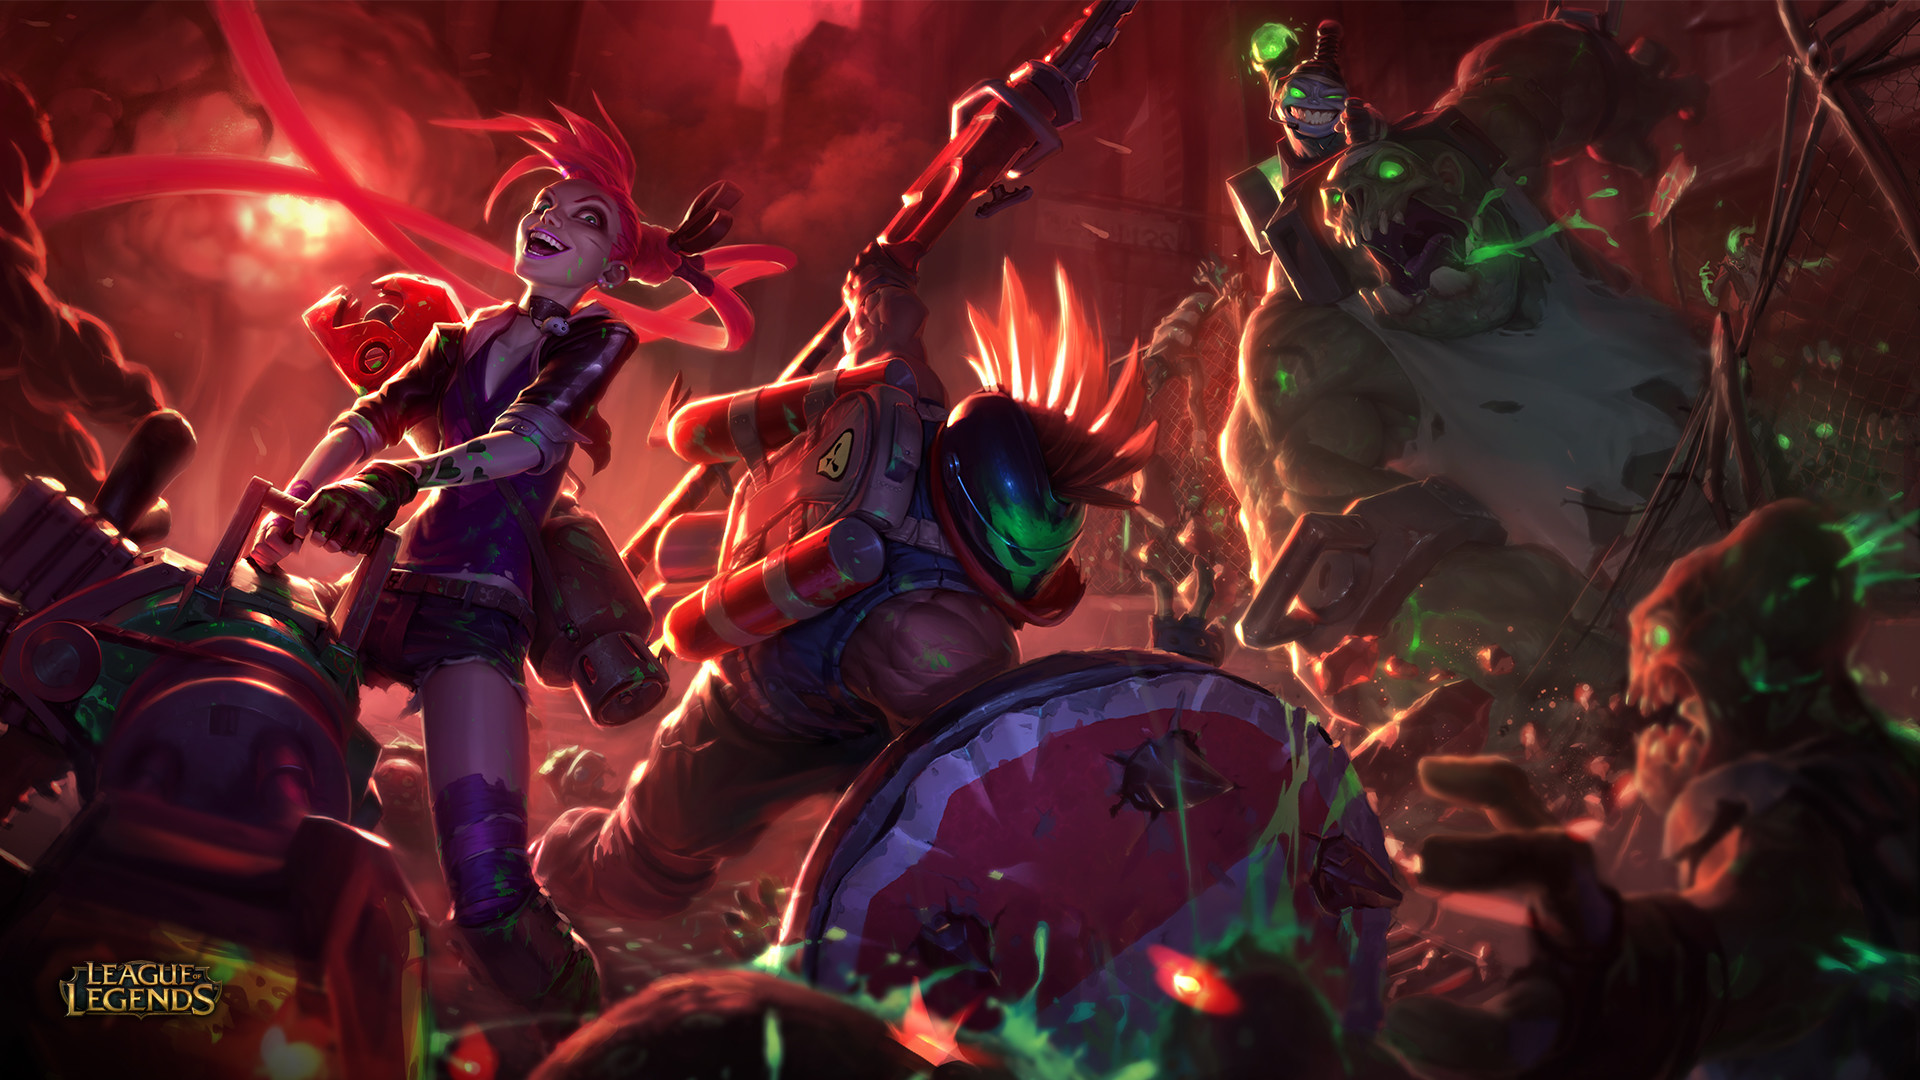 League of Legends Wallpapers (82+ pictures)